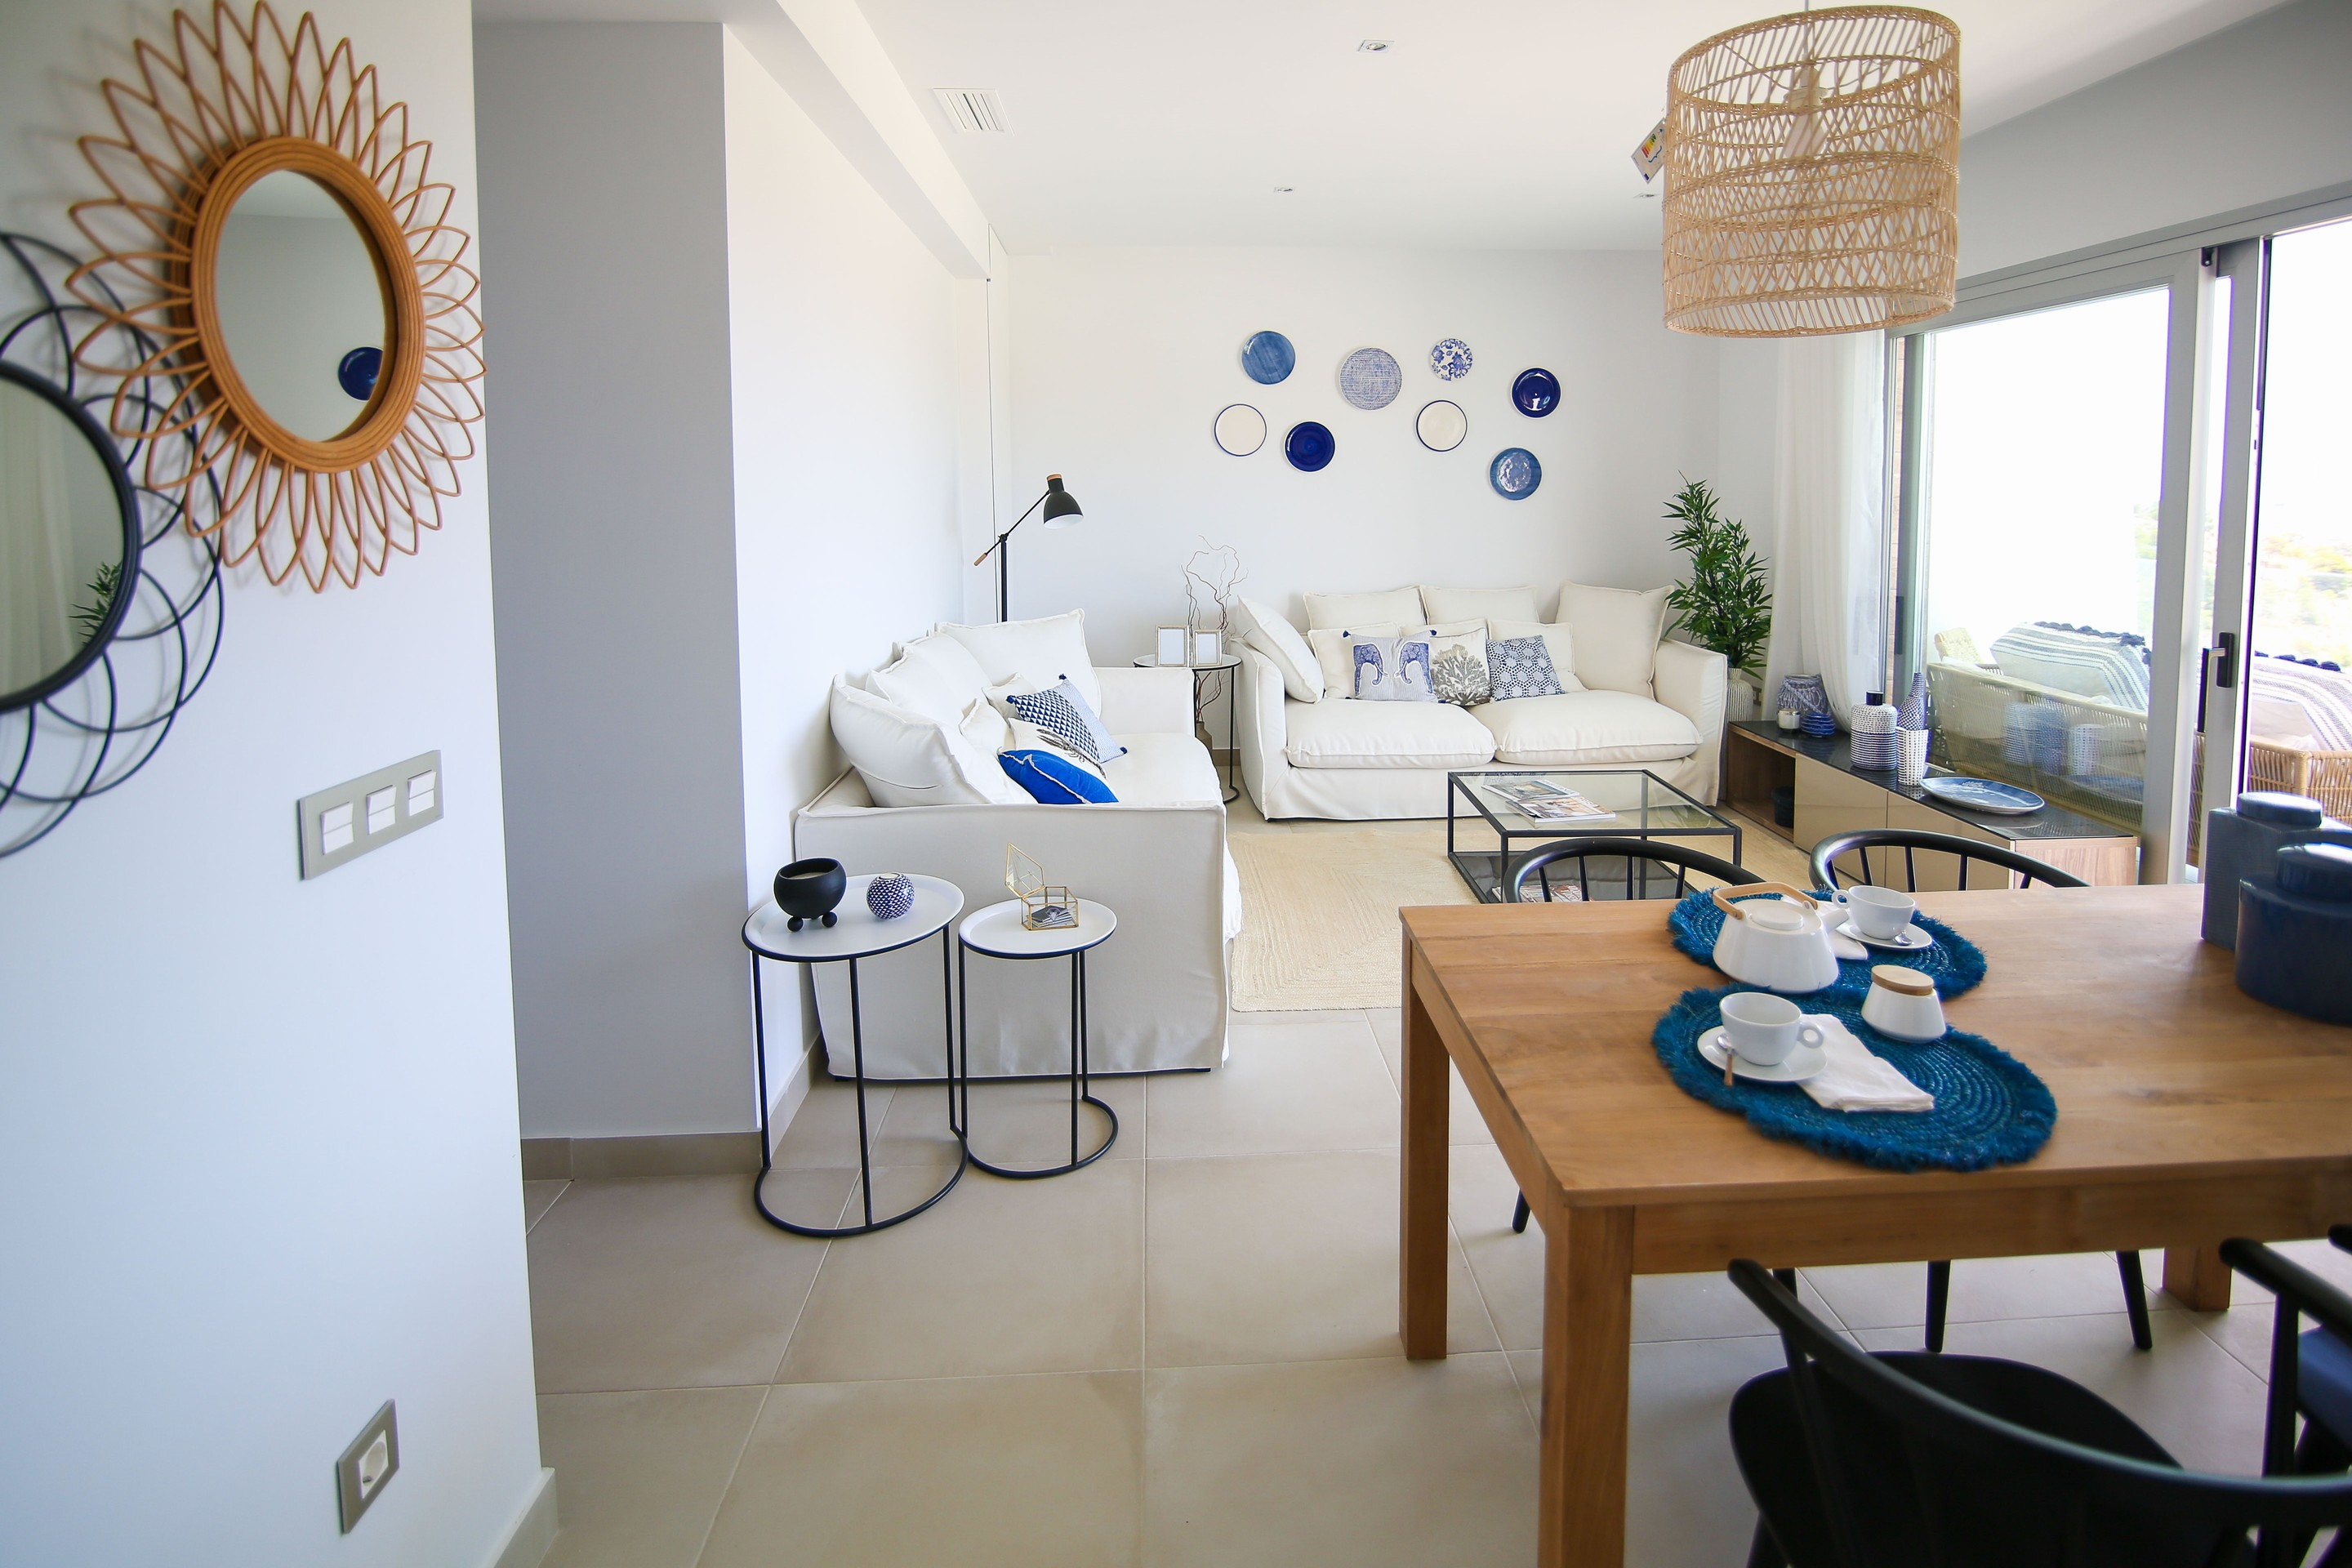 2 bedroom apartment For Sale in Finestrat - photograph 26